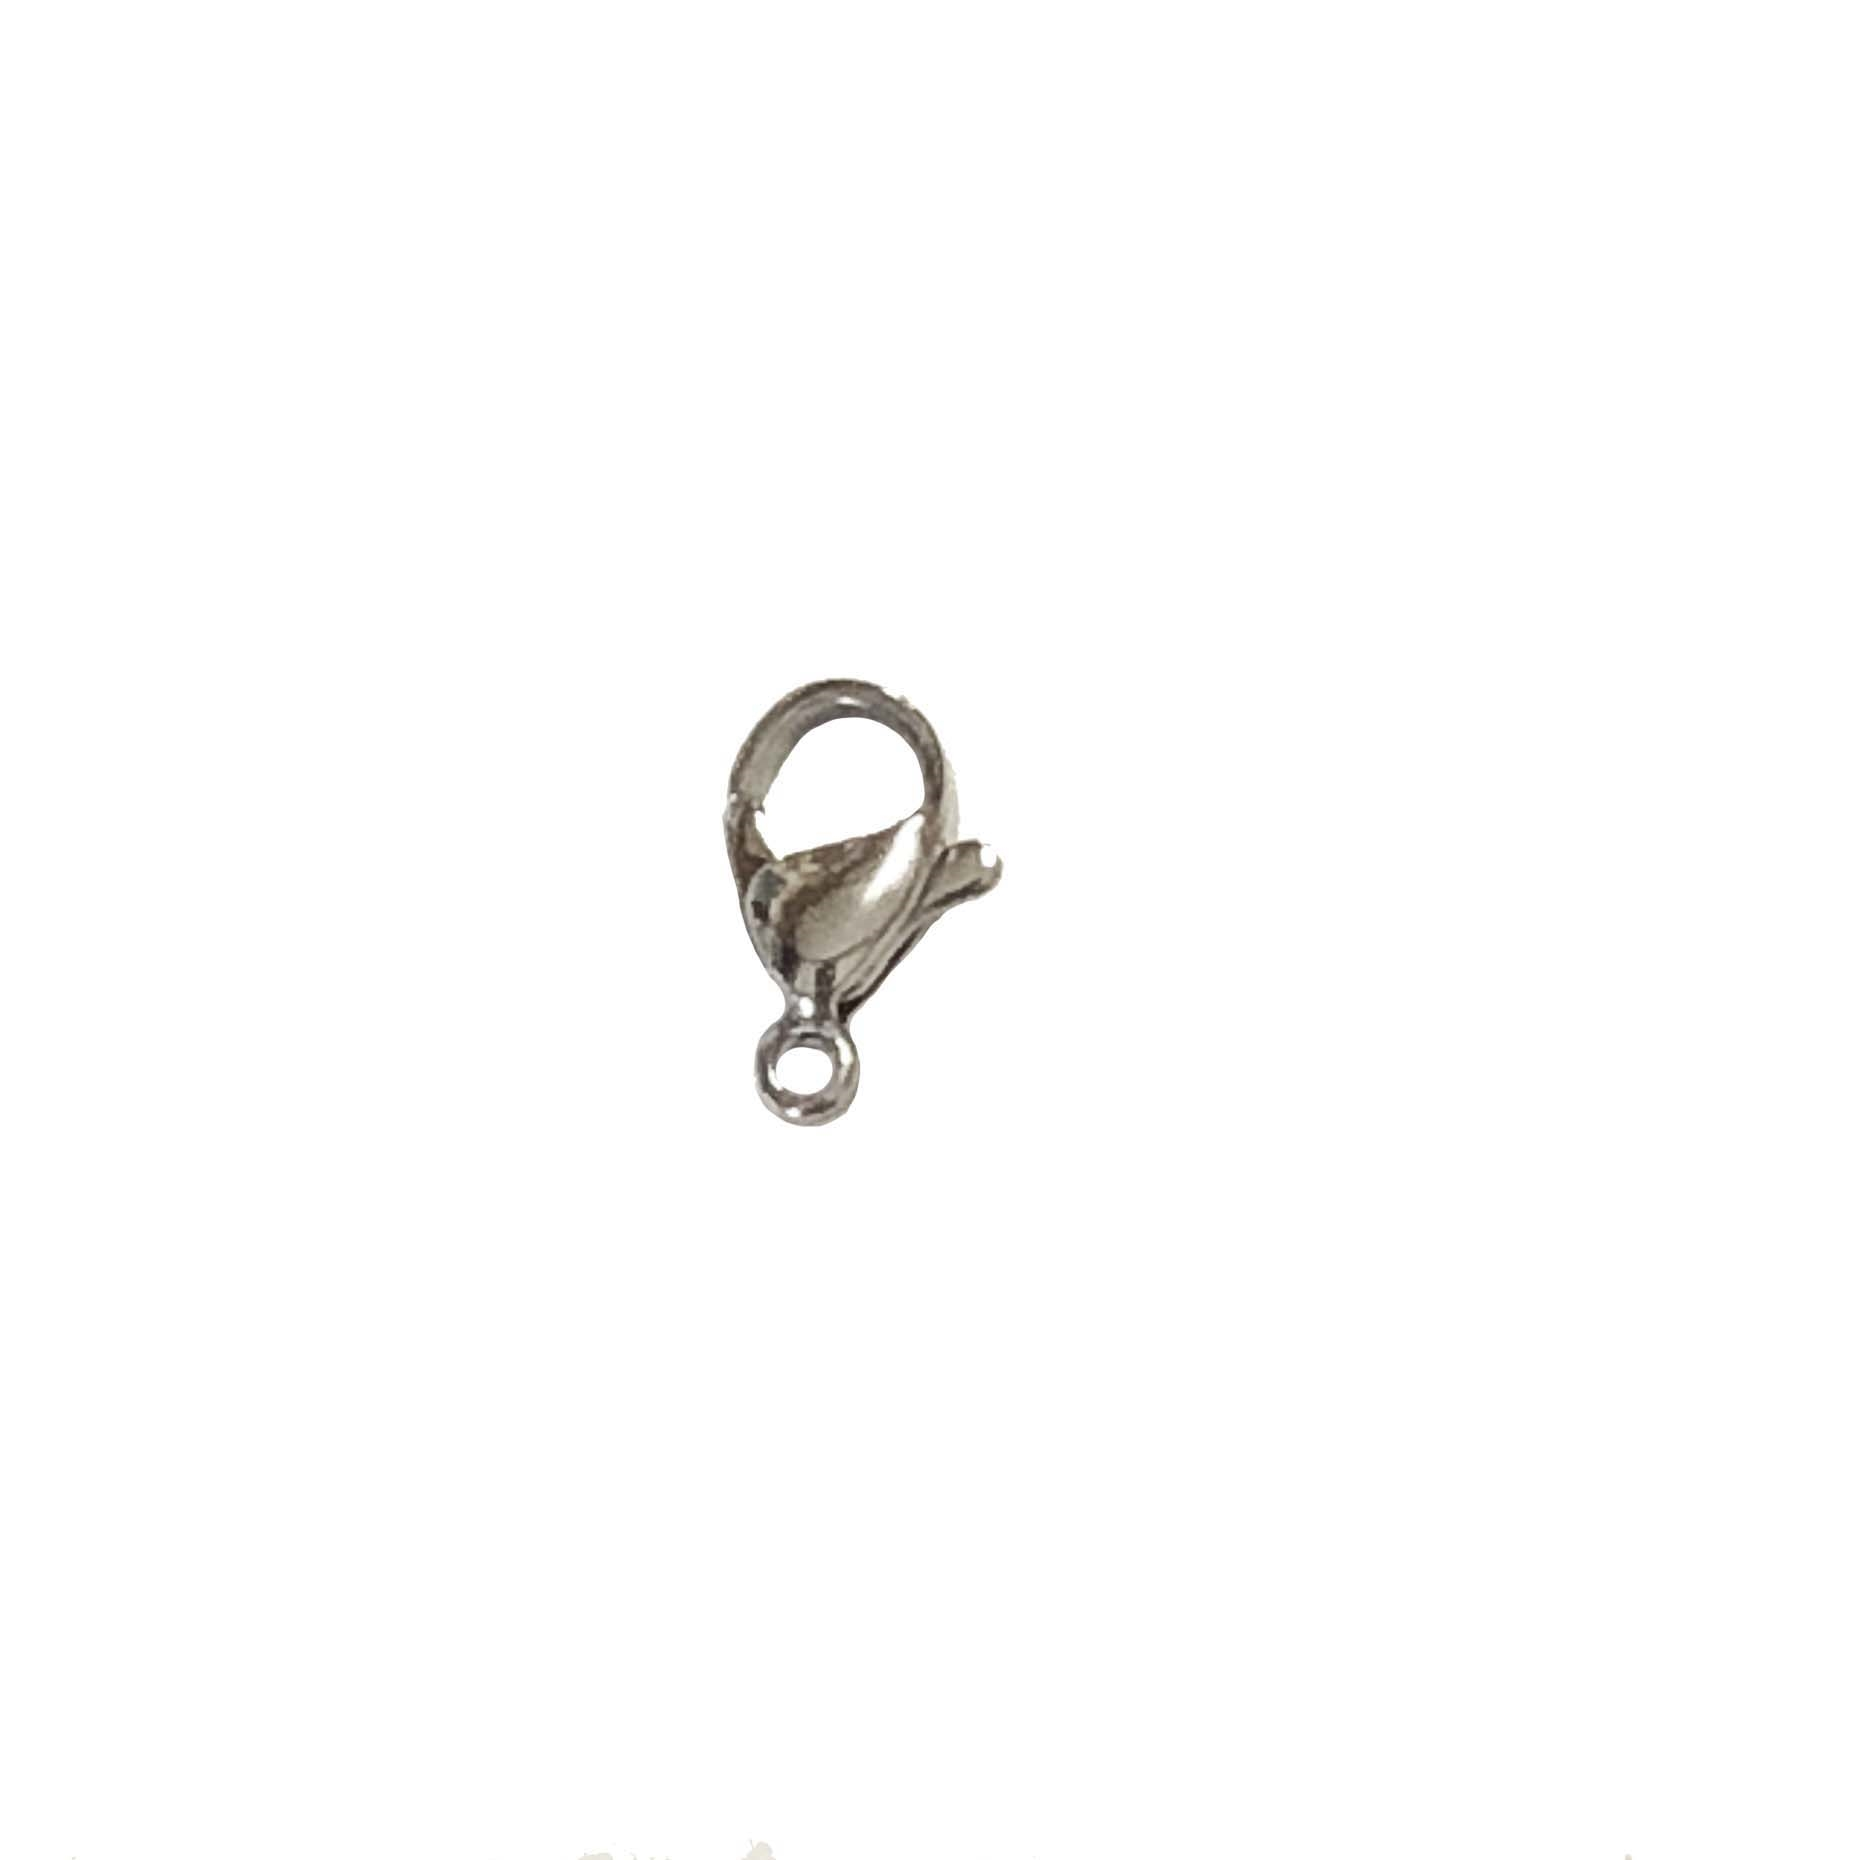 lobster claw clasp, stainless trigger clasp, 030, silvertone, jewelry supplies, clasp, clasps, silver, B'sue Boutiques, jewelry making, findings, jewelry parts